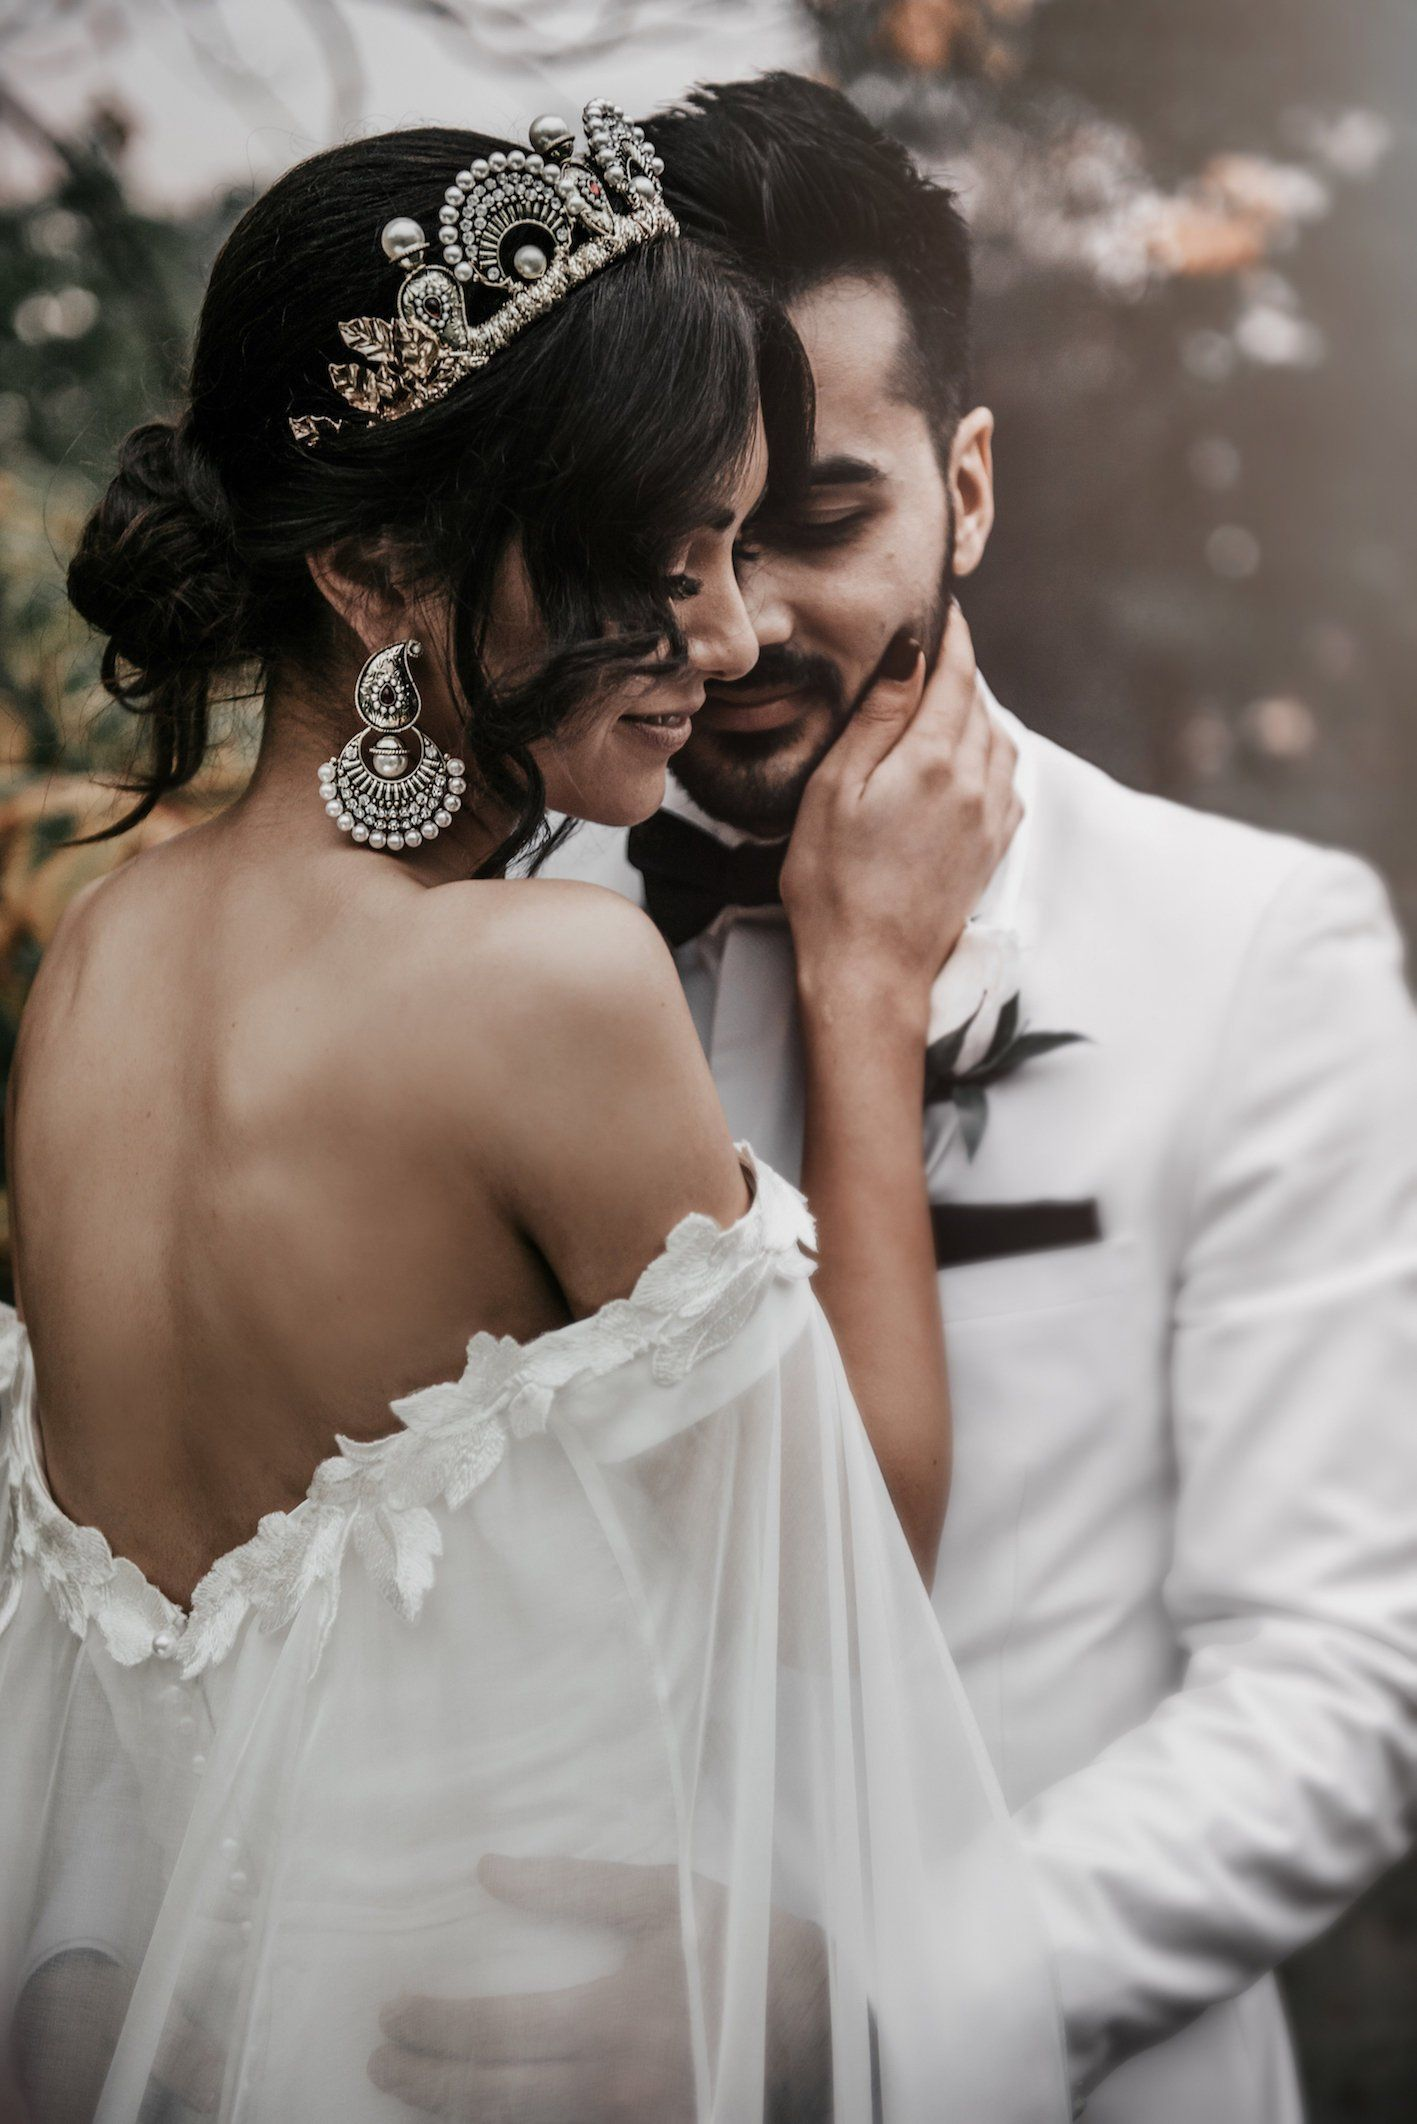 These Beautiful Bridal Headpieces Will Complete Your Bridal Look | Intimate Weddings - Small Wedding Blog - DIY Wedding Ideas for Small and Intimate Weddings - Real Small Weddings